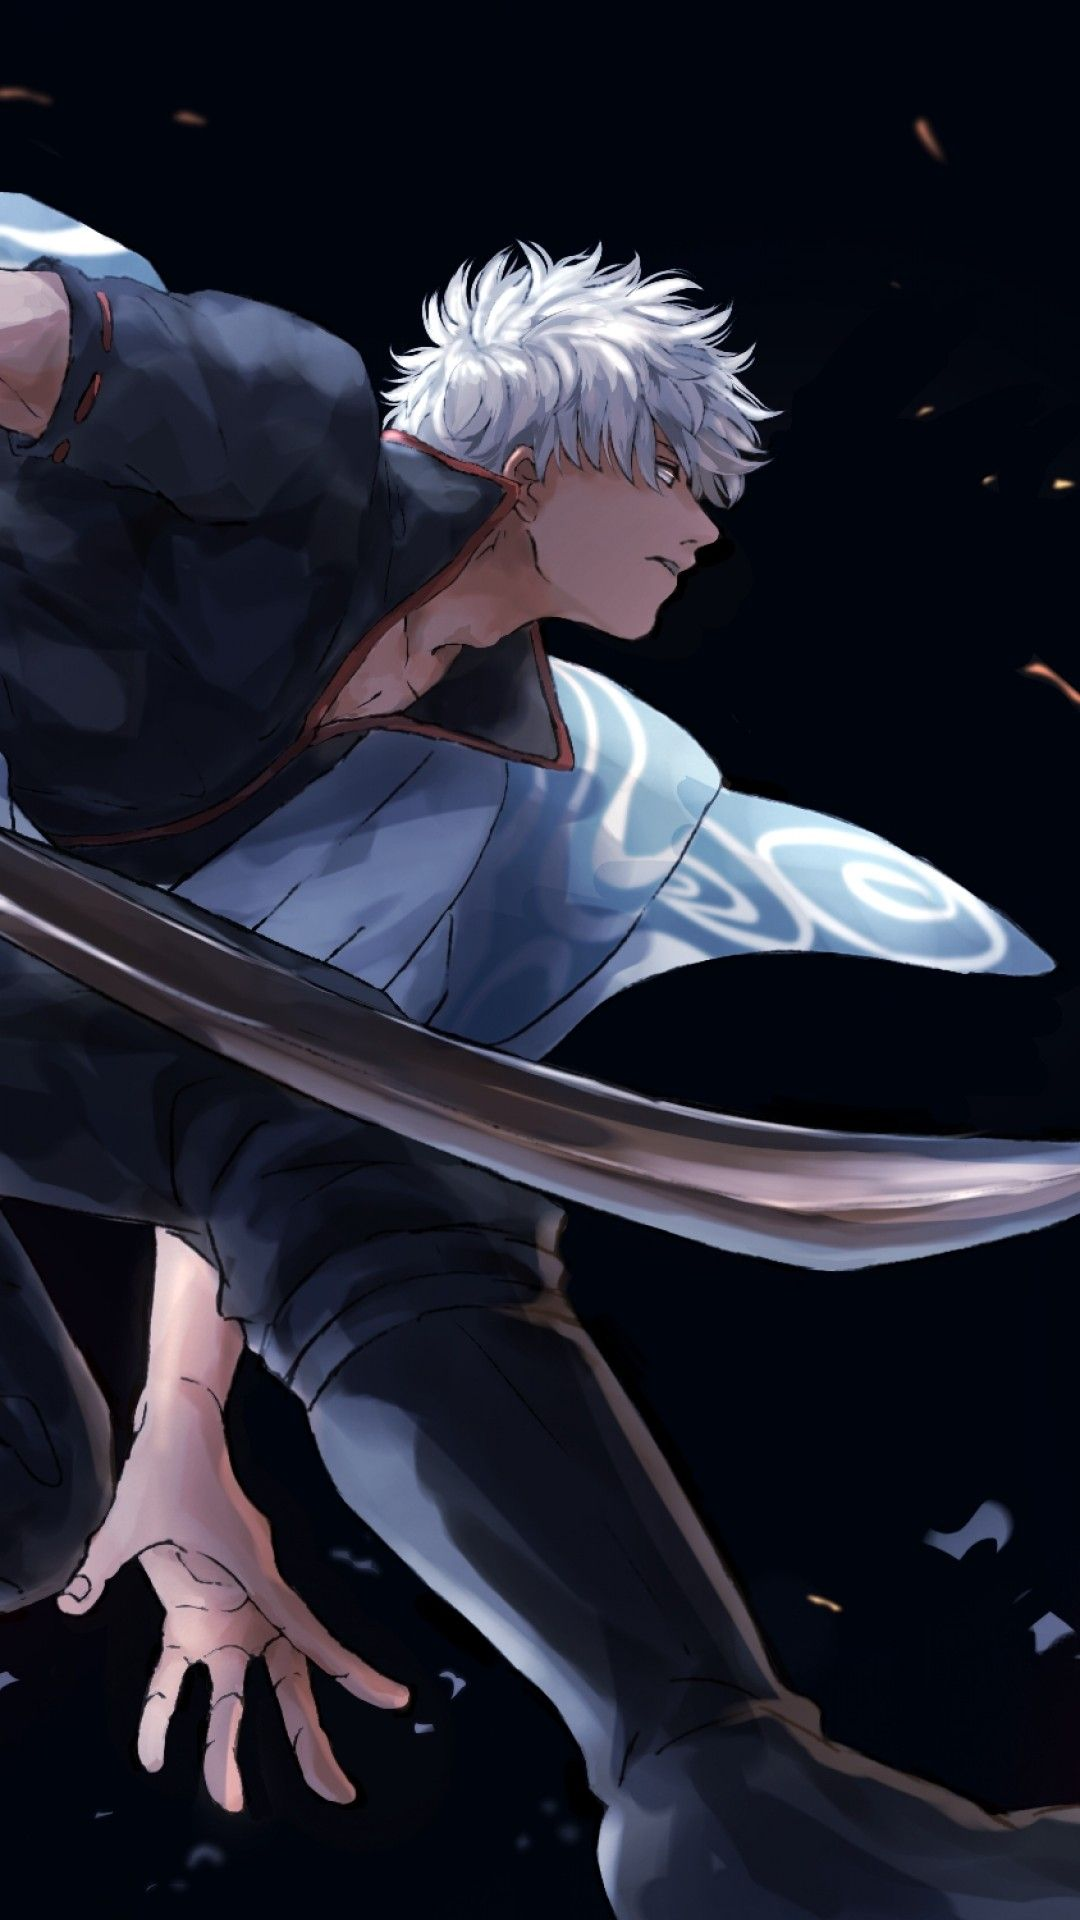 Gintama Anime iPhone wallpapers Personagens de anime